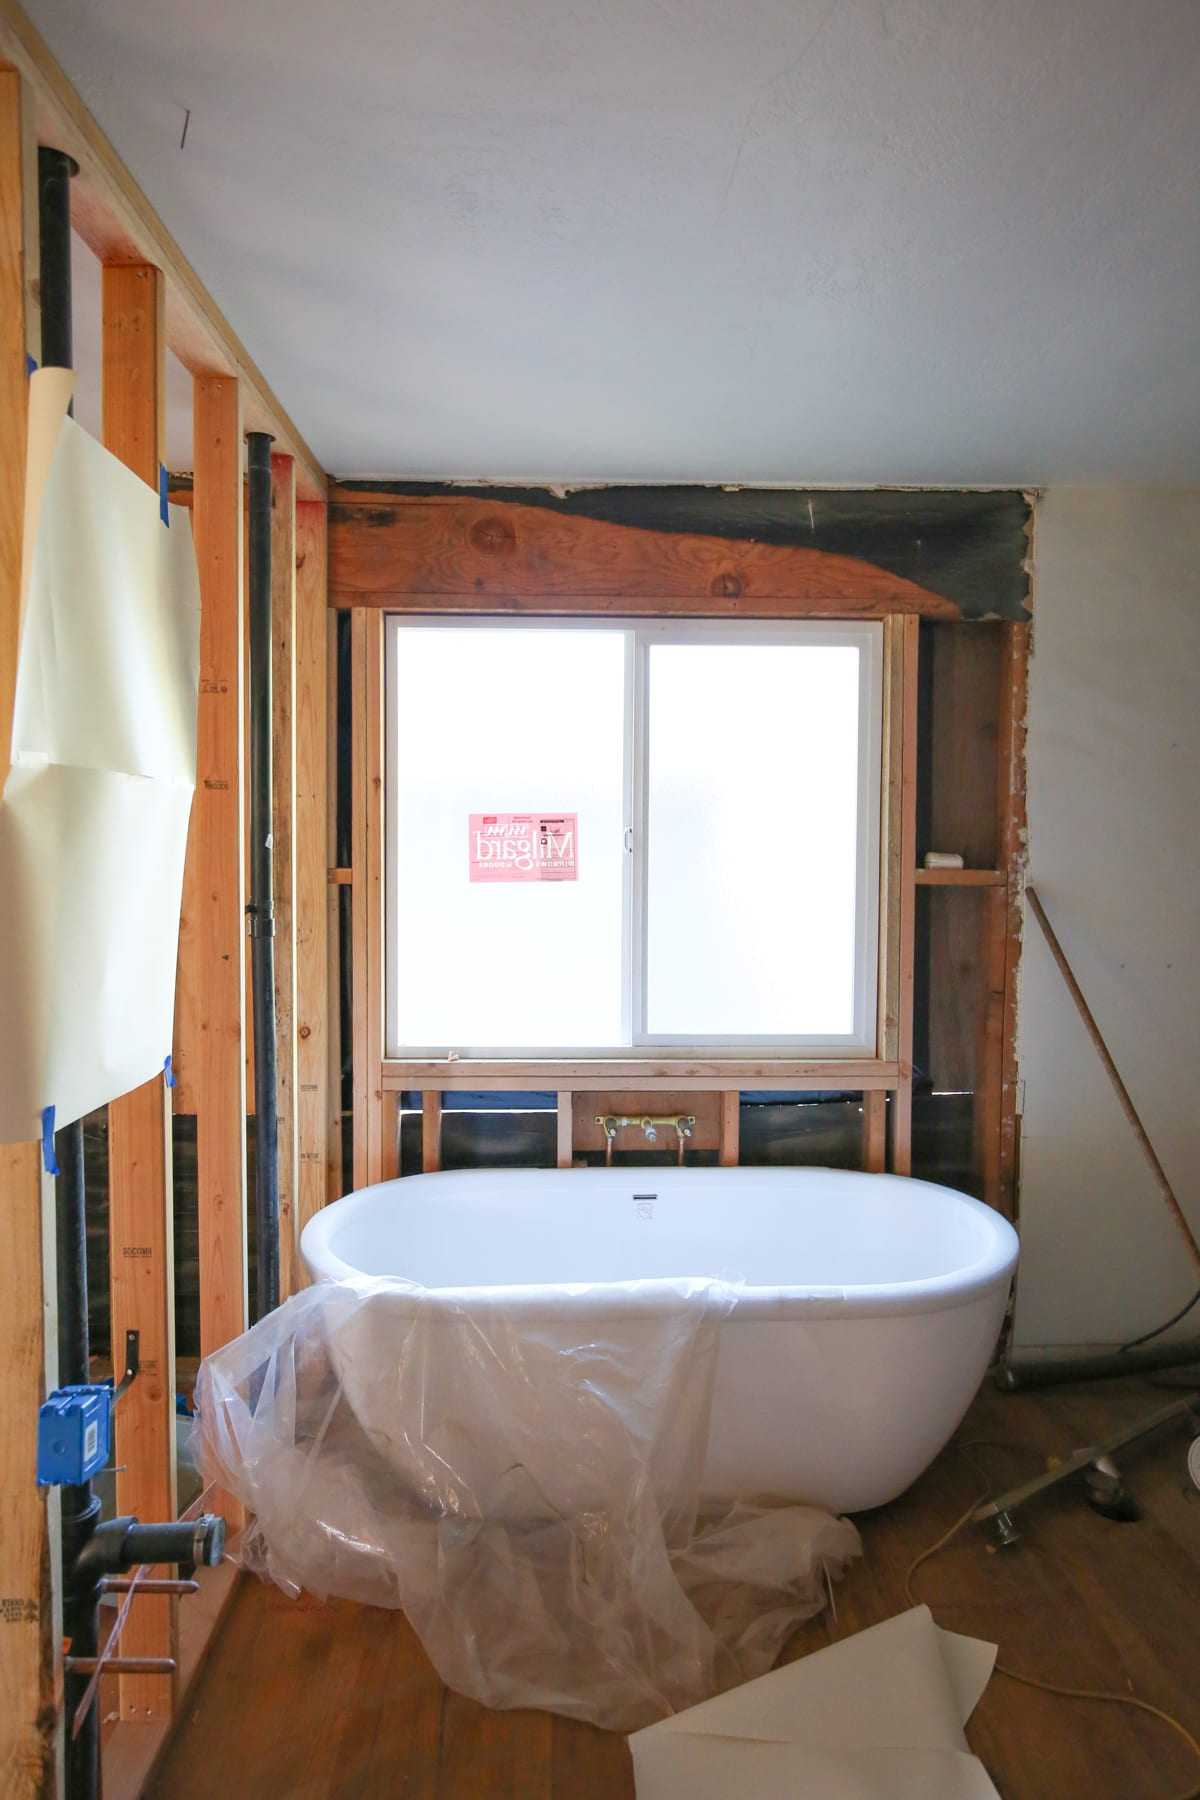 Construction in a master bathroom